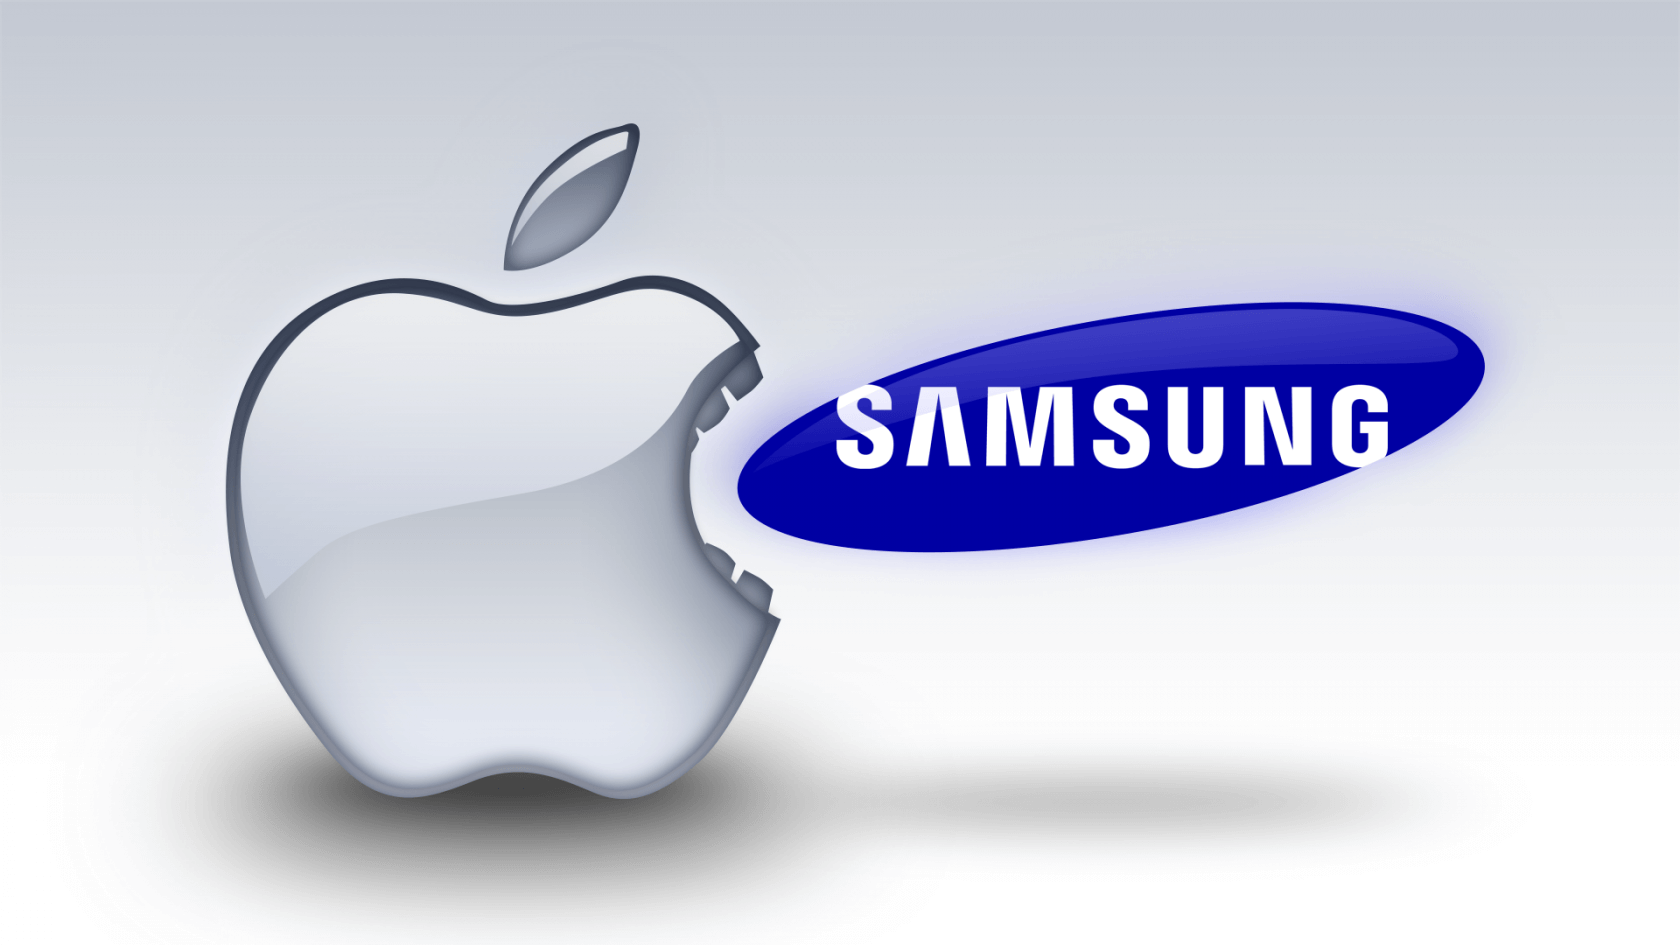 Apple and Samsung fight over what made the iPhone 'revolutionary'